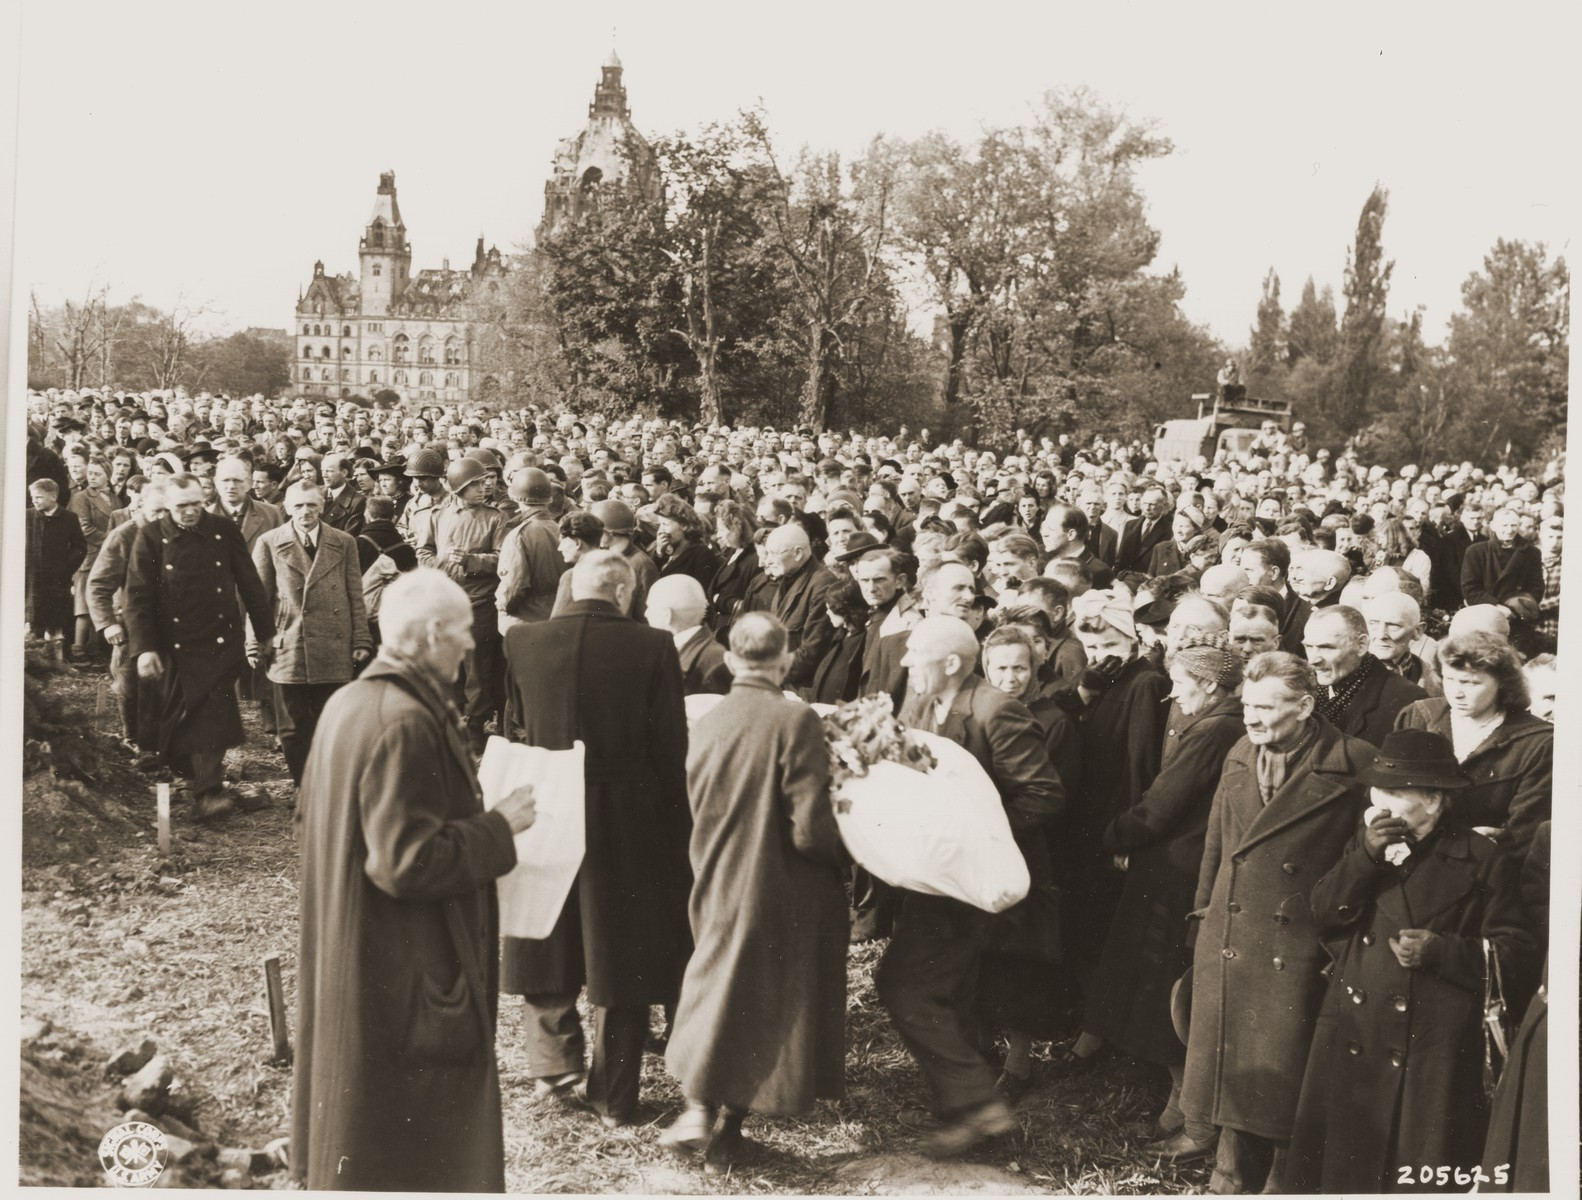 German civilians carry the body of one of 200 Russian prisoners, exhumed from a mass grave in Wuelfel, to a new grave near Hanover City Hall.  On April 8, 1945, 200 Red Army officers and other prisoners of war were sent on a death march from the Liebenau labor camp, 50 kilometers NW of Hanover, where the prisoners worked in a munitions factory.  As they reached Wuelfel, a suburb of Hanover, the SS guards ordered 25 prisoners, including one woman, to dig a large grave.  While this was being done, a prisoner killed a guard with a shovel and was able to escape to the woods nearby.  From there he heard the shots as the remaining prisoners were killed and buried in the grave.  Several weeks later, as American troops swept through the area, the mass grave was discovered.  On May 2, the 35th Division of the U.S. Ninth Army gathered townspeople from Wuelfel and forced them to exhume the grave, wrap the bodies in sheets, and rebury them near the Hanover City Hall.  Before reburial, many of the victims were identified by friends and relatives remaining in the area.